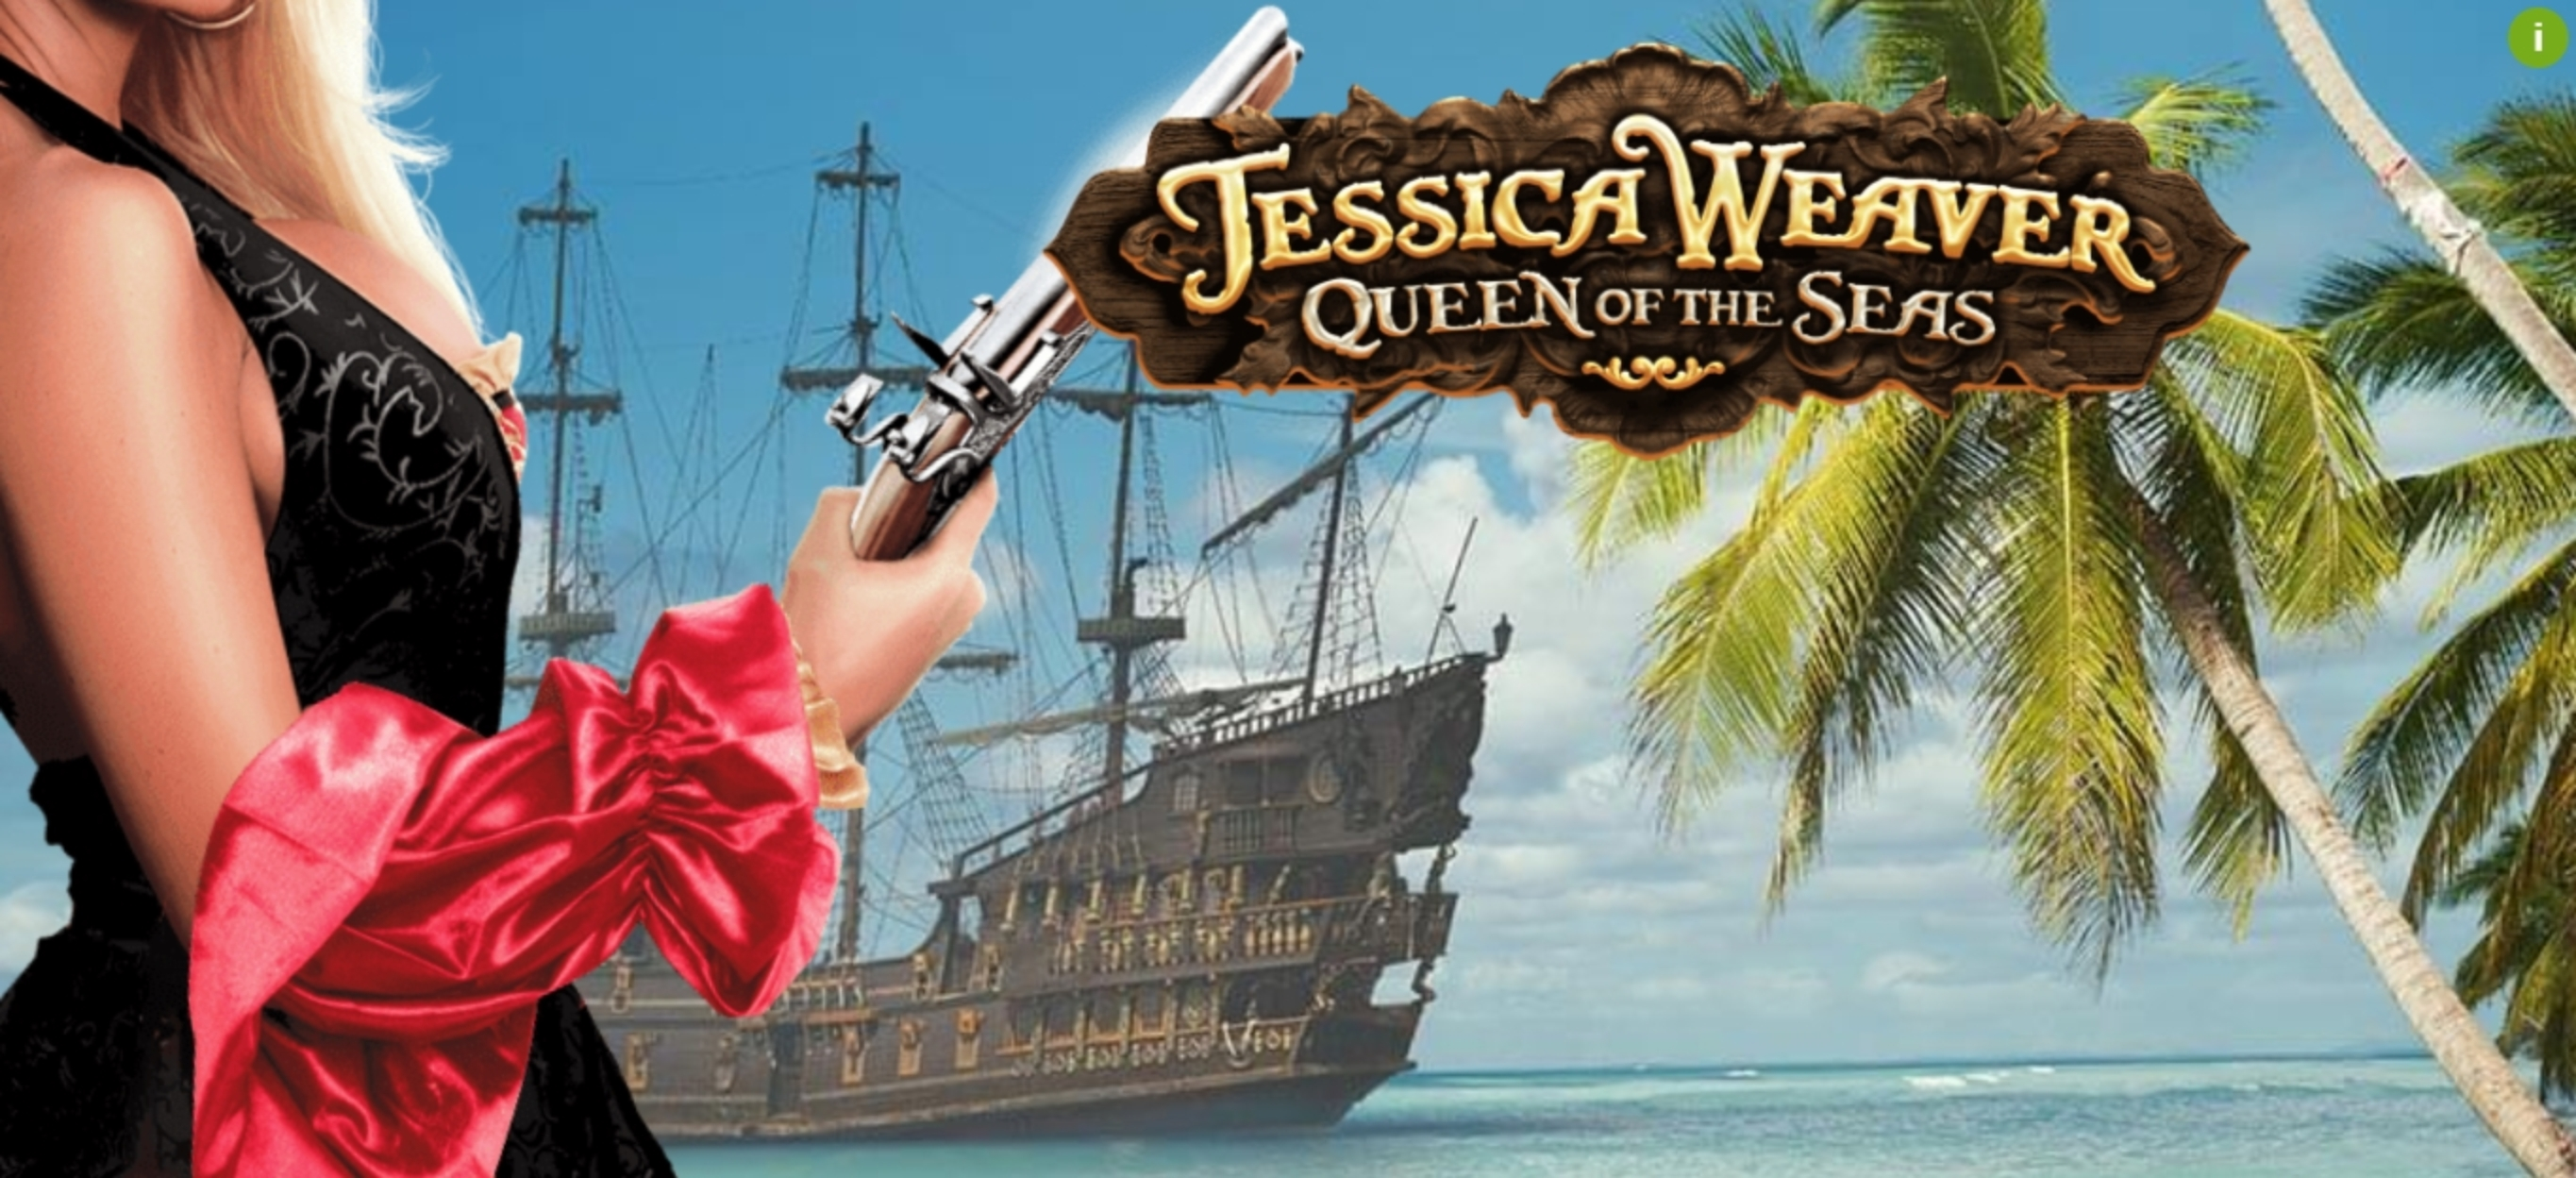 The Jessica Weaver Queen of the Seas Online Slot Demo Game by MGA